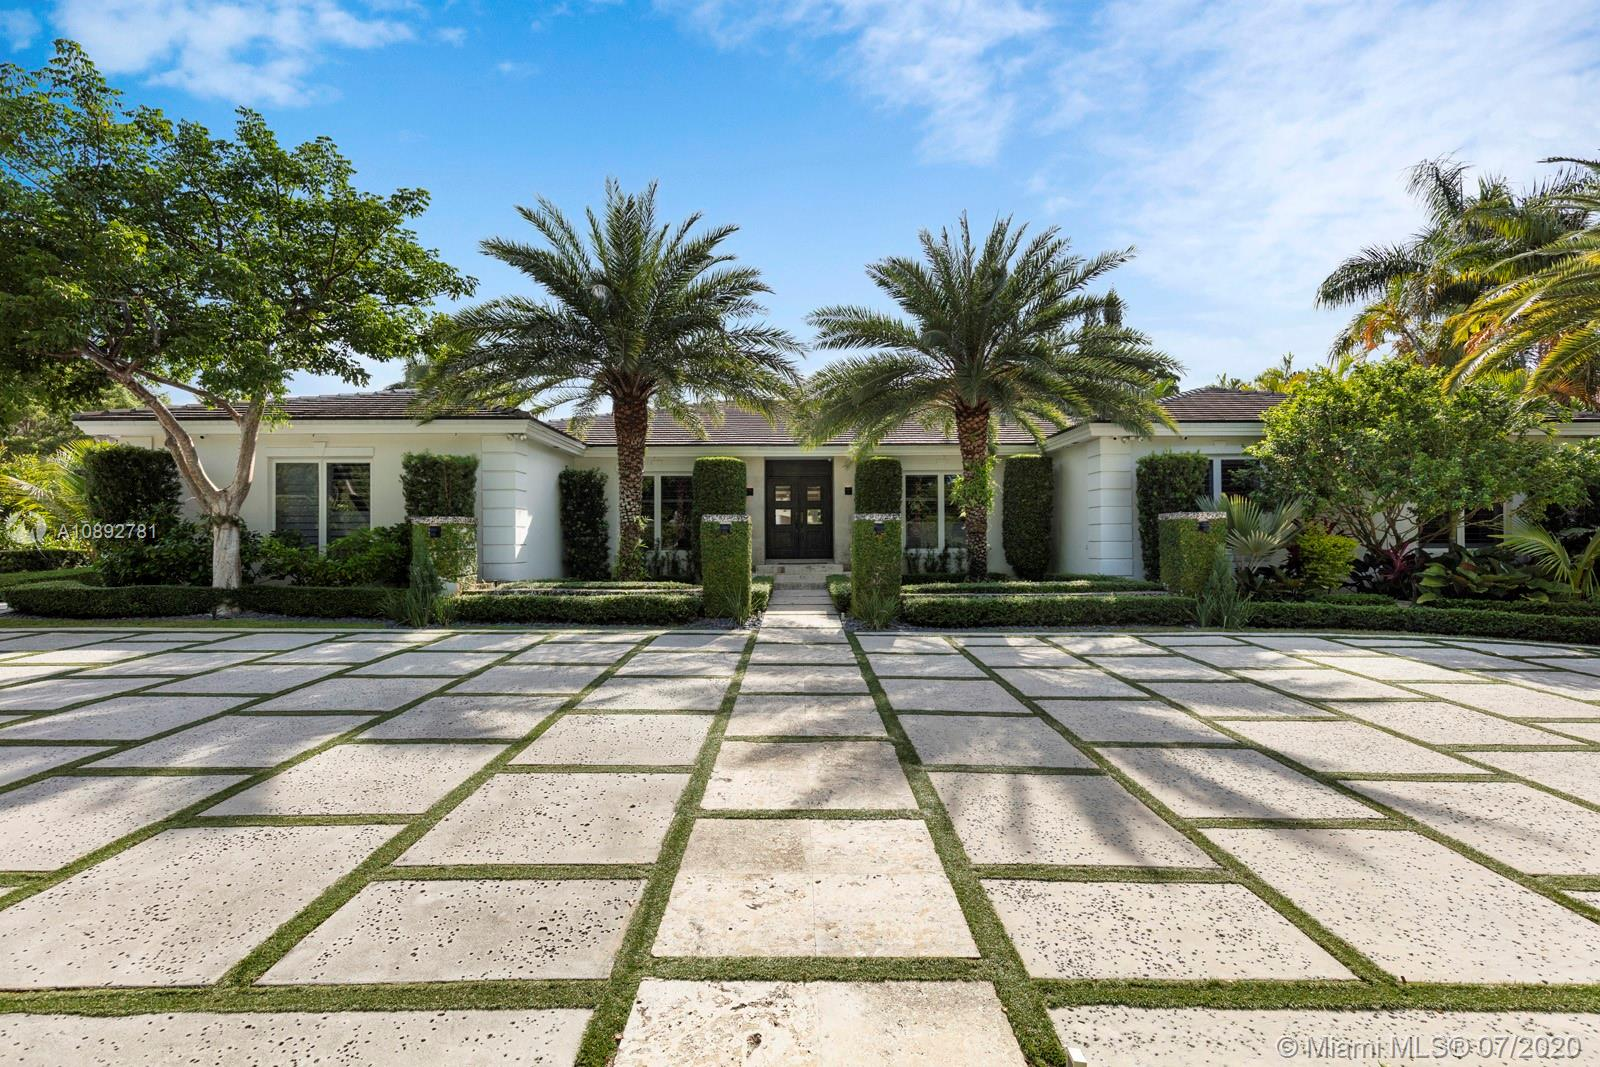 Once in a long while a spectacular offering comes to market  that is perfect for enjoying Florida living at its best!  Such is the case with this 5 bedroom, sleek, traditional on the outside, but totally 21st century on the inside home on a highly desired corner lot!  With some 6,000+ s.f., this beautiful open floor plan accommodates the most discriminating buyers.  Not only does the home have a media room/movie theater, it boasts a playroom, 2 car air conditioned garage, lavish master suite, gourmet cook's kitchen and much, much more. The 25,000+ s.f lot provides the perfect backdrop for the inviting pool and surrounding gardens.  No detail has been overlooked in making this a home everyone will love.